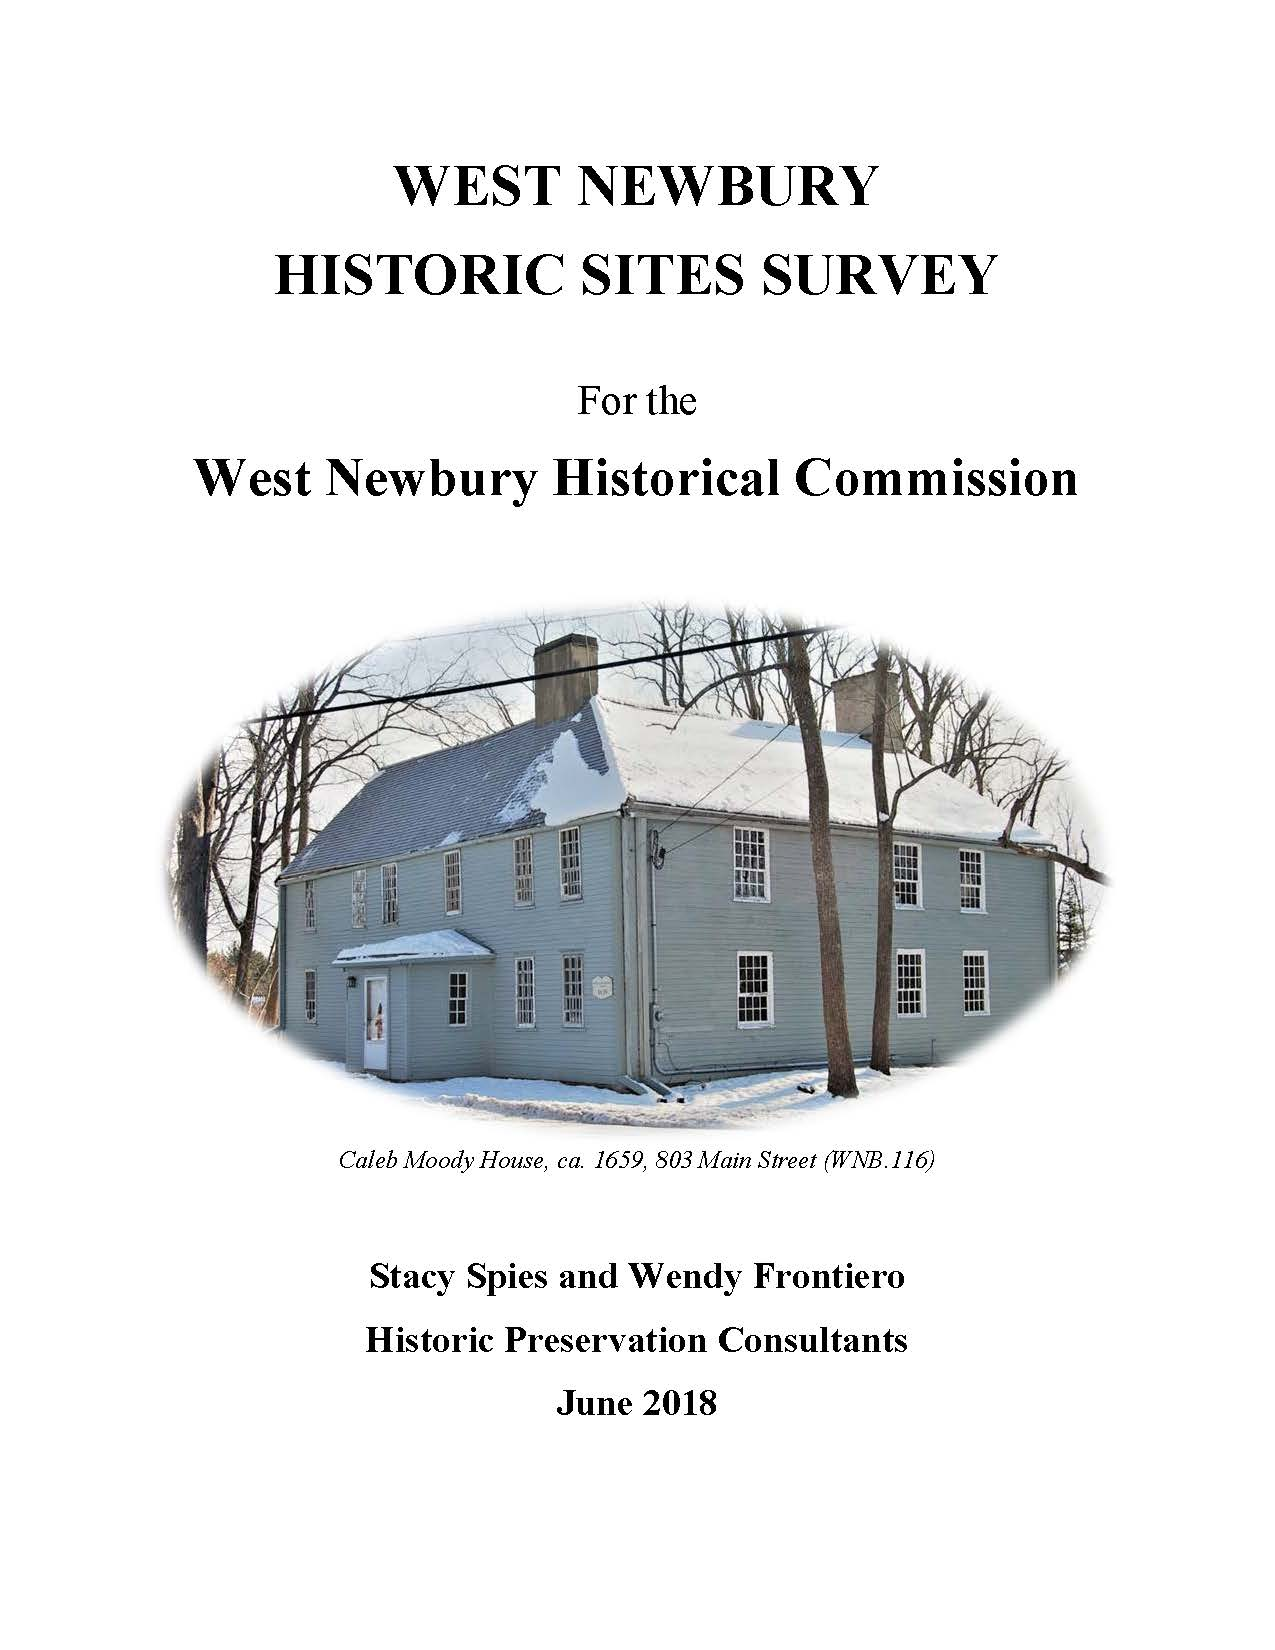 2018-Historic Survey Overview Manufacturers' Row Historic Area Training Field Historic District Way To The River Historic Area Brickett St #26 Chase St #1 Emery Ln #21 Harrison Ave #4, 10, 14 Main St #66, 68, 74, 78, 84, 87 Main St #102, 118, 124, 127, 139, 154, 161, 162, 165, 169, 170, 171, 175, 178, 196, 199 Main St #200, 201, 209, 210, 213, 214, 219, 220, 223, 224, 236, 238, 248, 254, 259, 262, 274, 278 Main St #319, 322, 323, 331, 333, 335, 337-39, 345, 347, 356, 360, 368. 369, 390-92 Main St #400, 407, 411, 412, 416, 433, 444, 465, 476, 491, 495 Main St #503, 505, 510, 511, 528, 529, 555, 558, 563, 591 Main St #608, 613, 614, 615, 619, 623, 628 Main St #750, 760, 772, 774, 796 Main St #800, 801, 803, 806, 810, 820, 832, 836, 841, 866 Main St #901, 905, 914, 961 Pleasant St #6, 8, 16 Training Field Rd #2, 4, 6, 8, 10